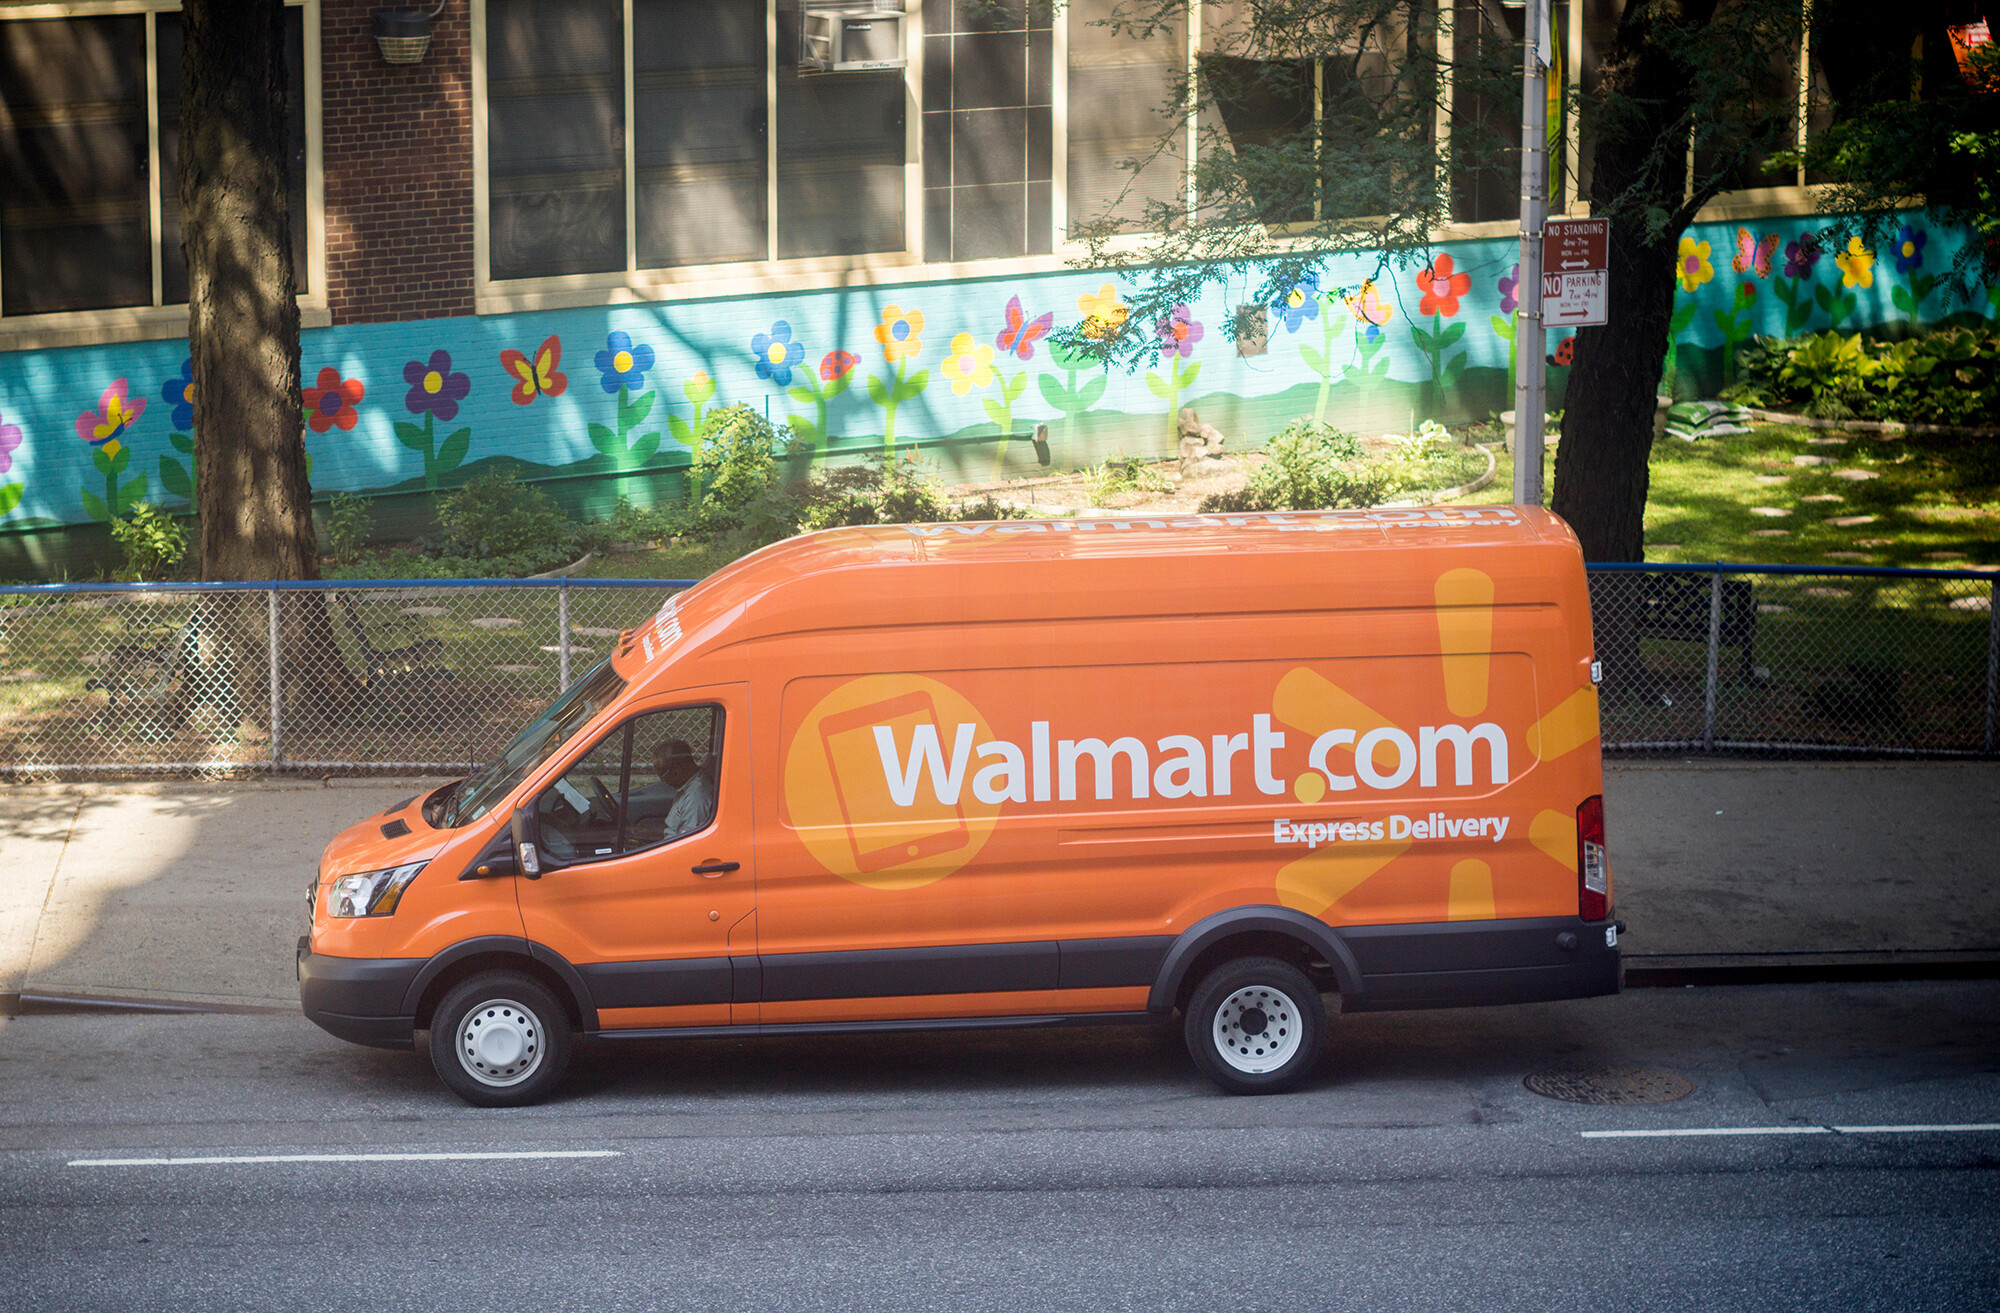 Walmart wants to deliver you stuff, even if you didn't buy it at Walmart